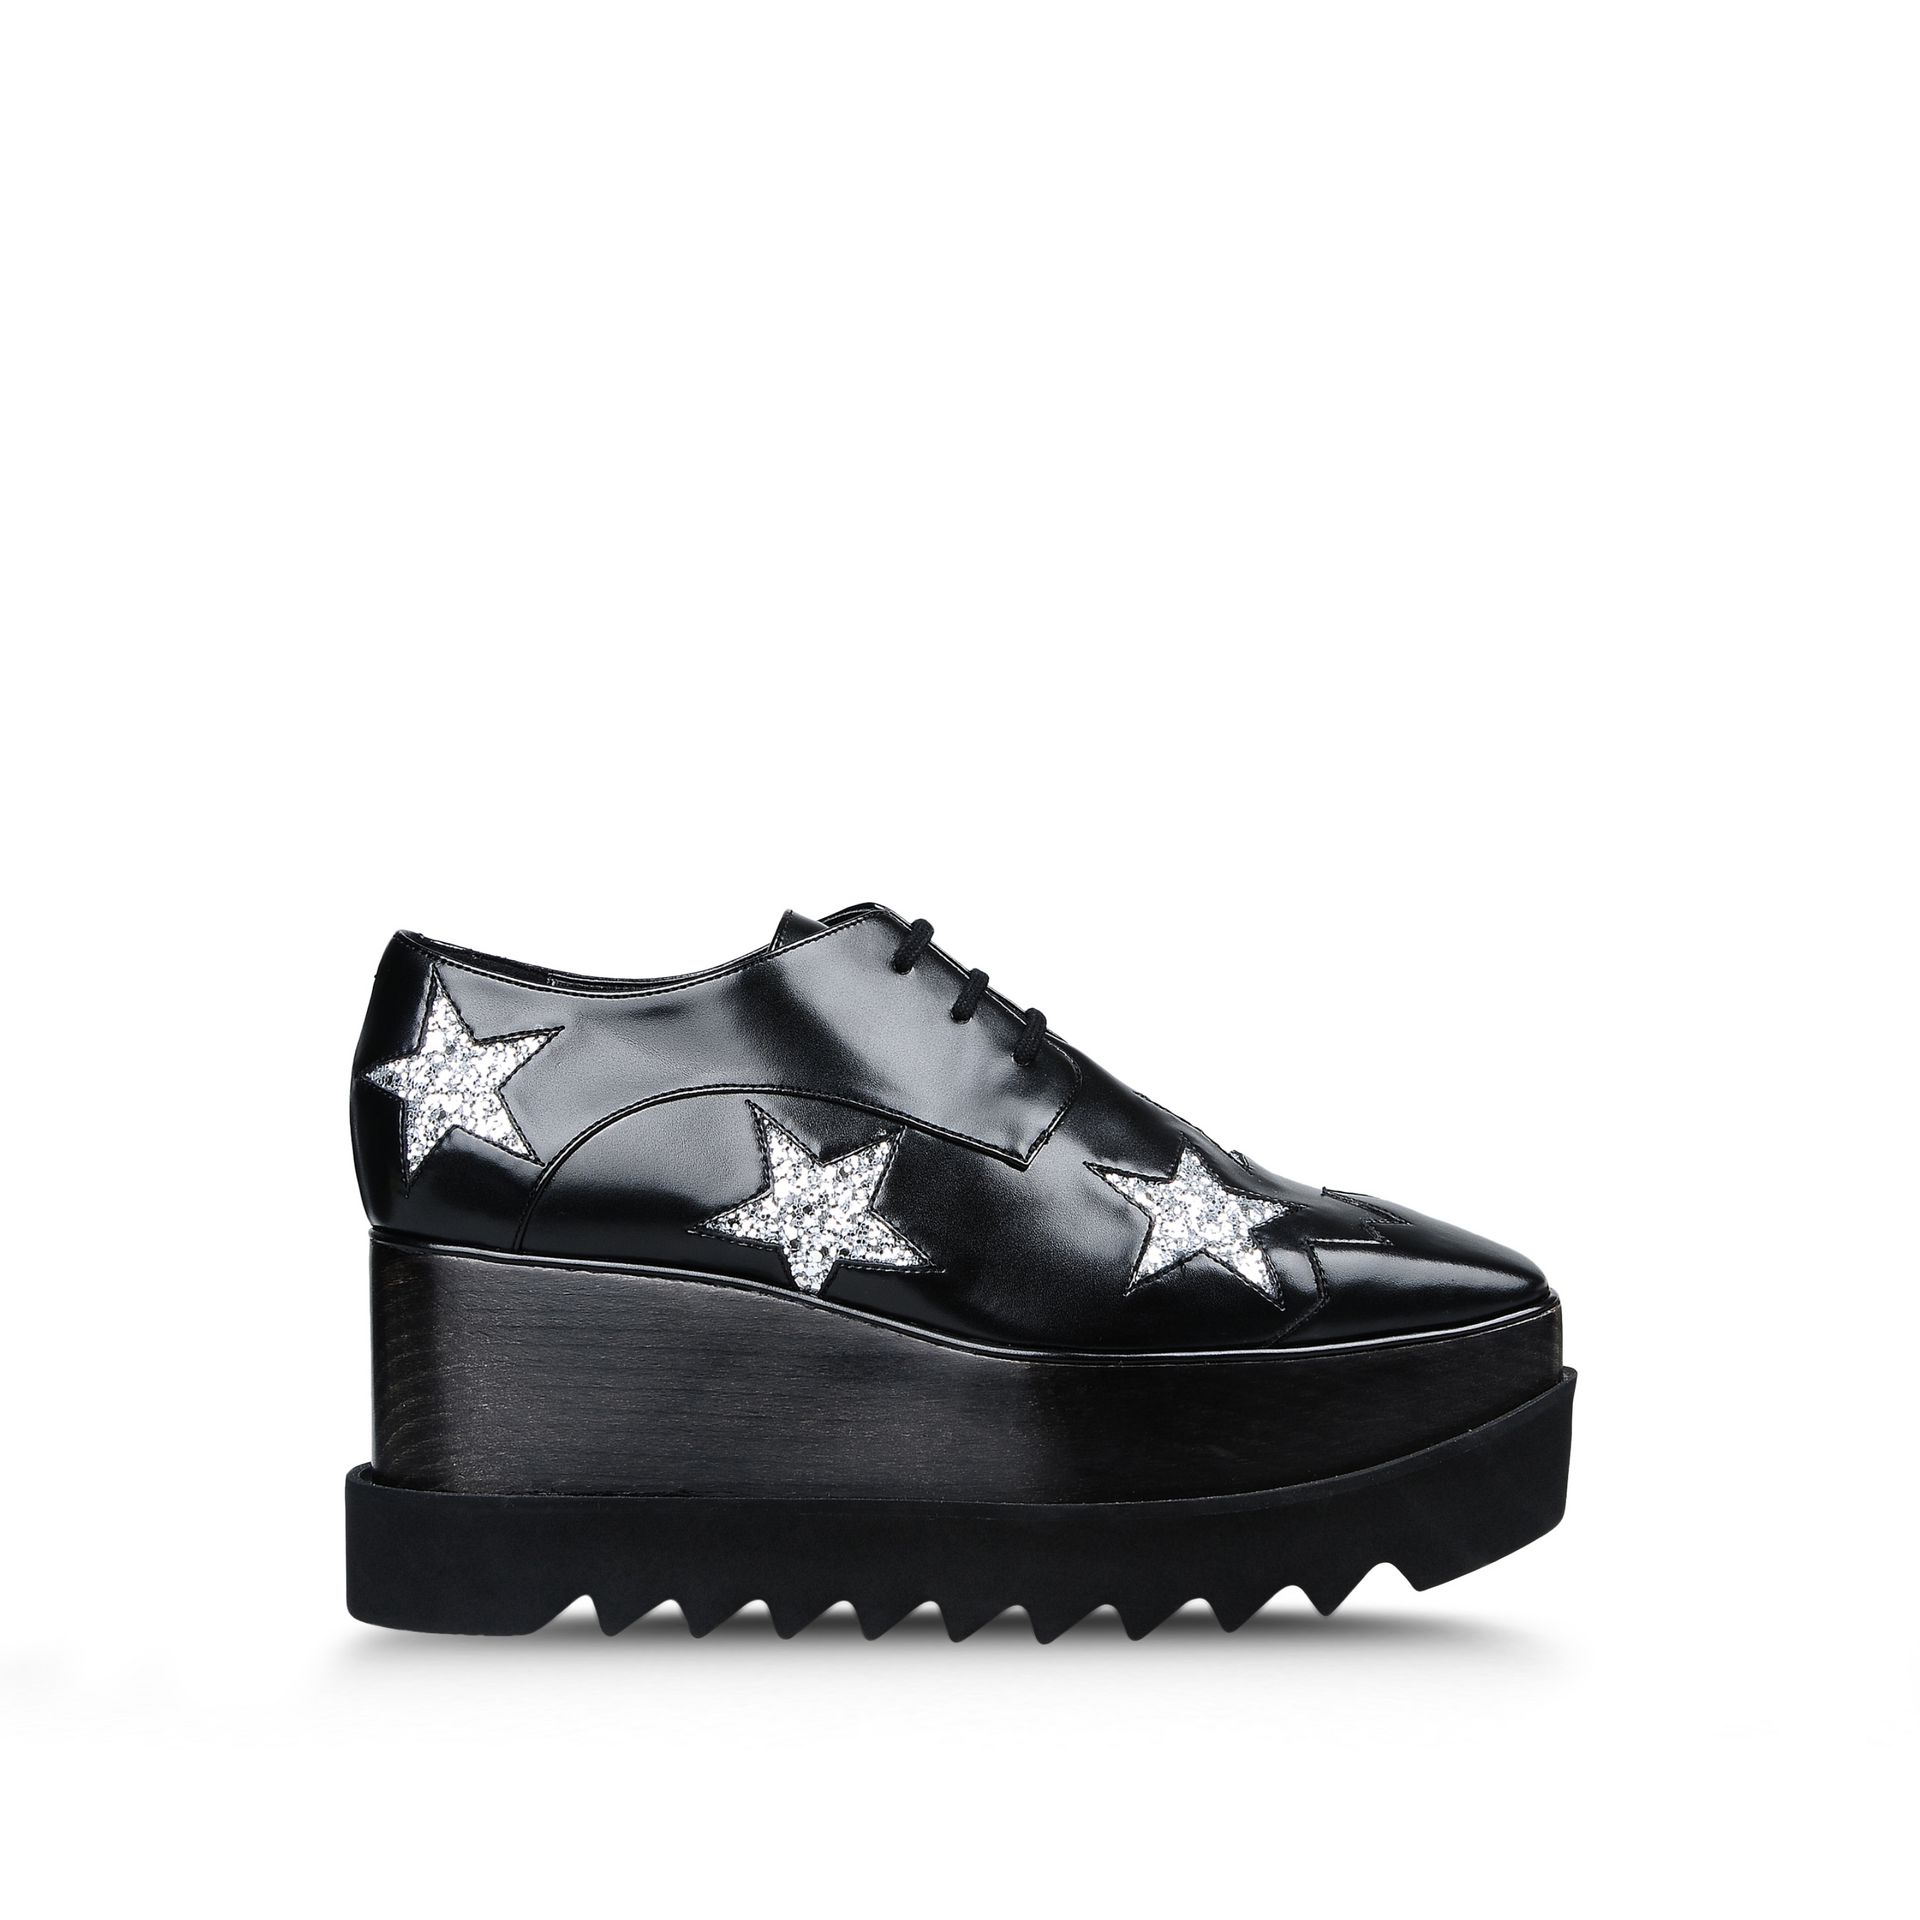 aff7f051d356 Lyst - Stella McCartney Elyse Leather Oxford Shoes in Black